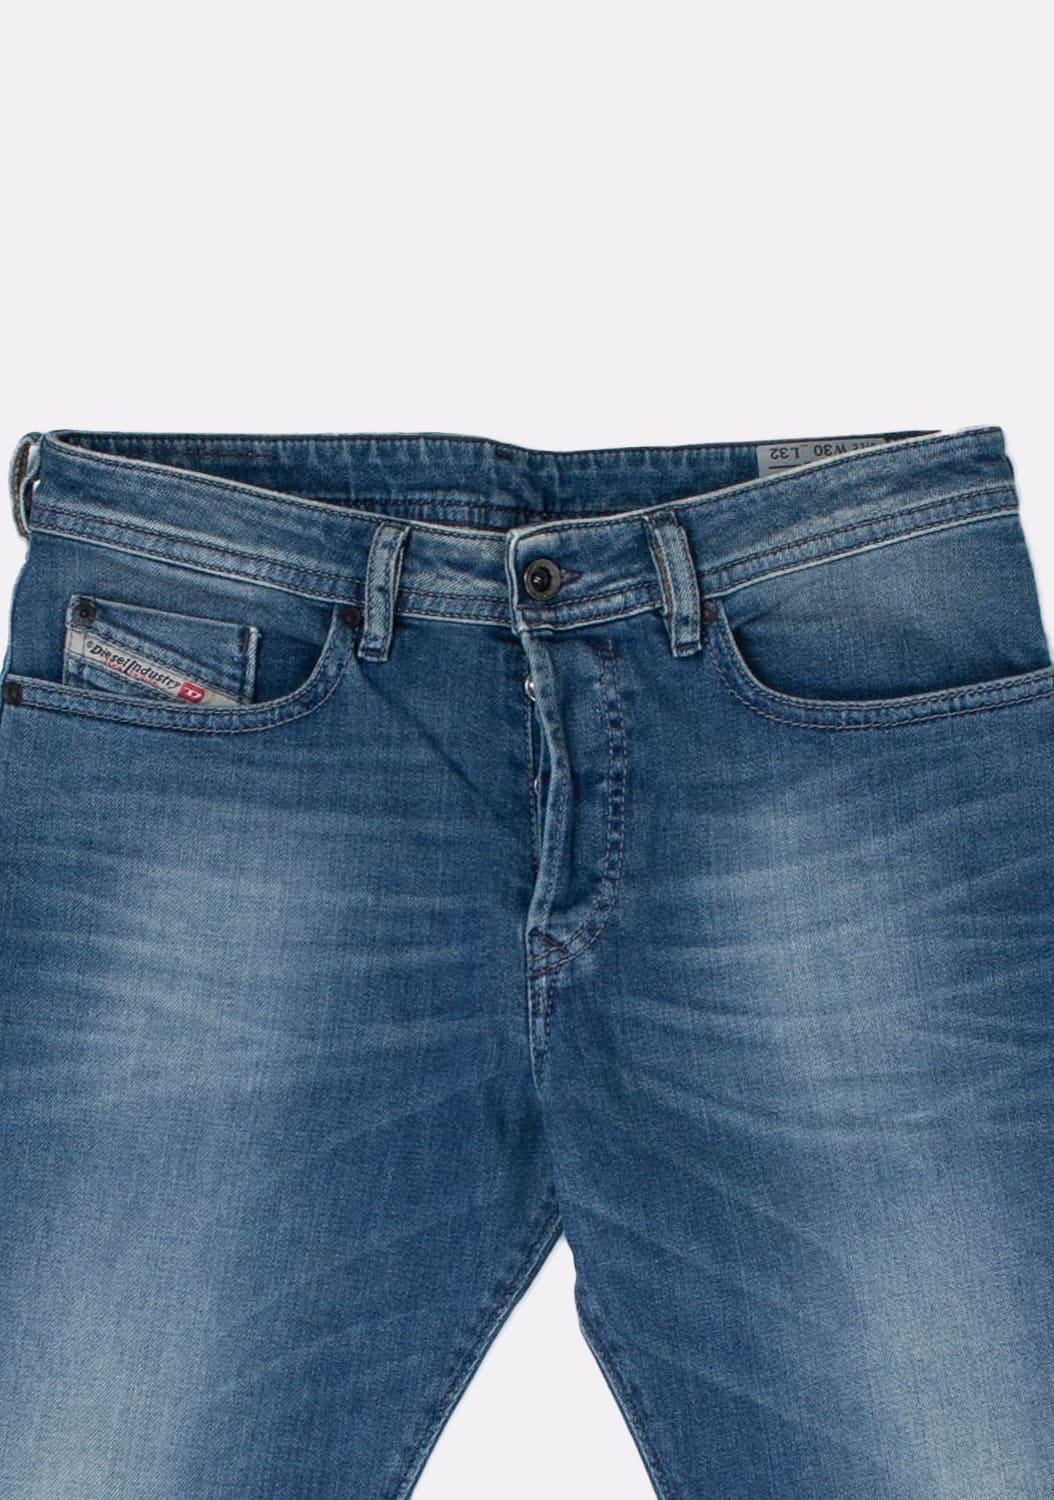 Diesel-Buster-Regular-Slim-Tappered-0669C-Stretch-30-32-melyni-urocklt (3)